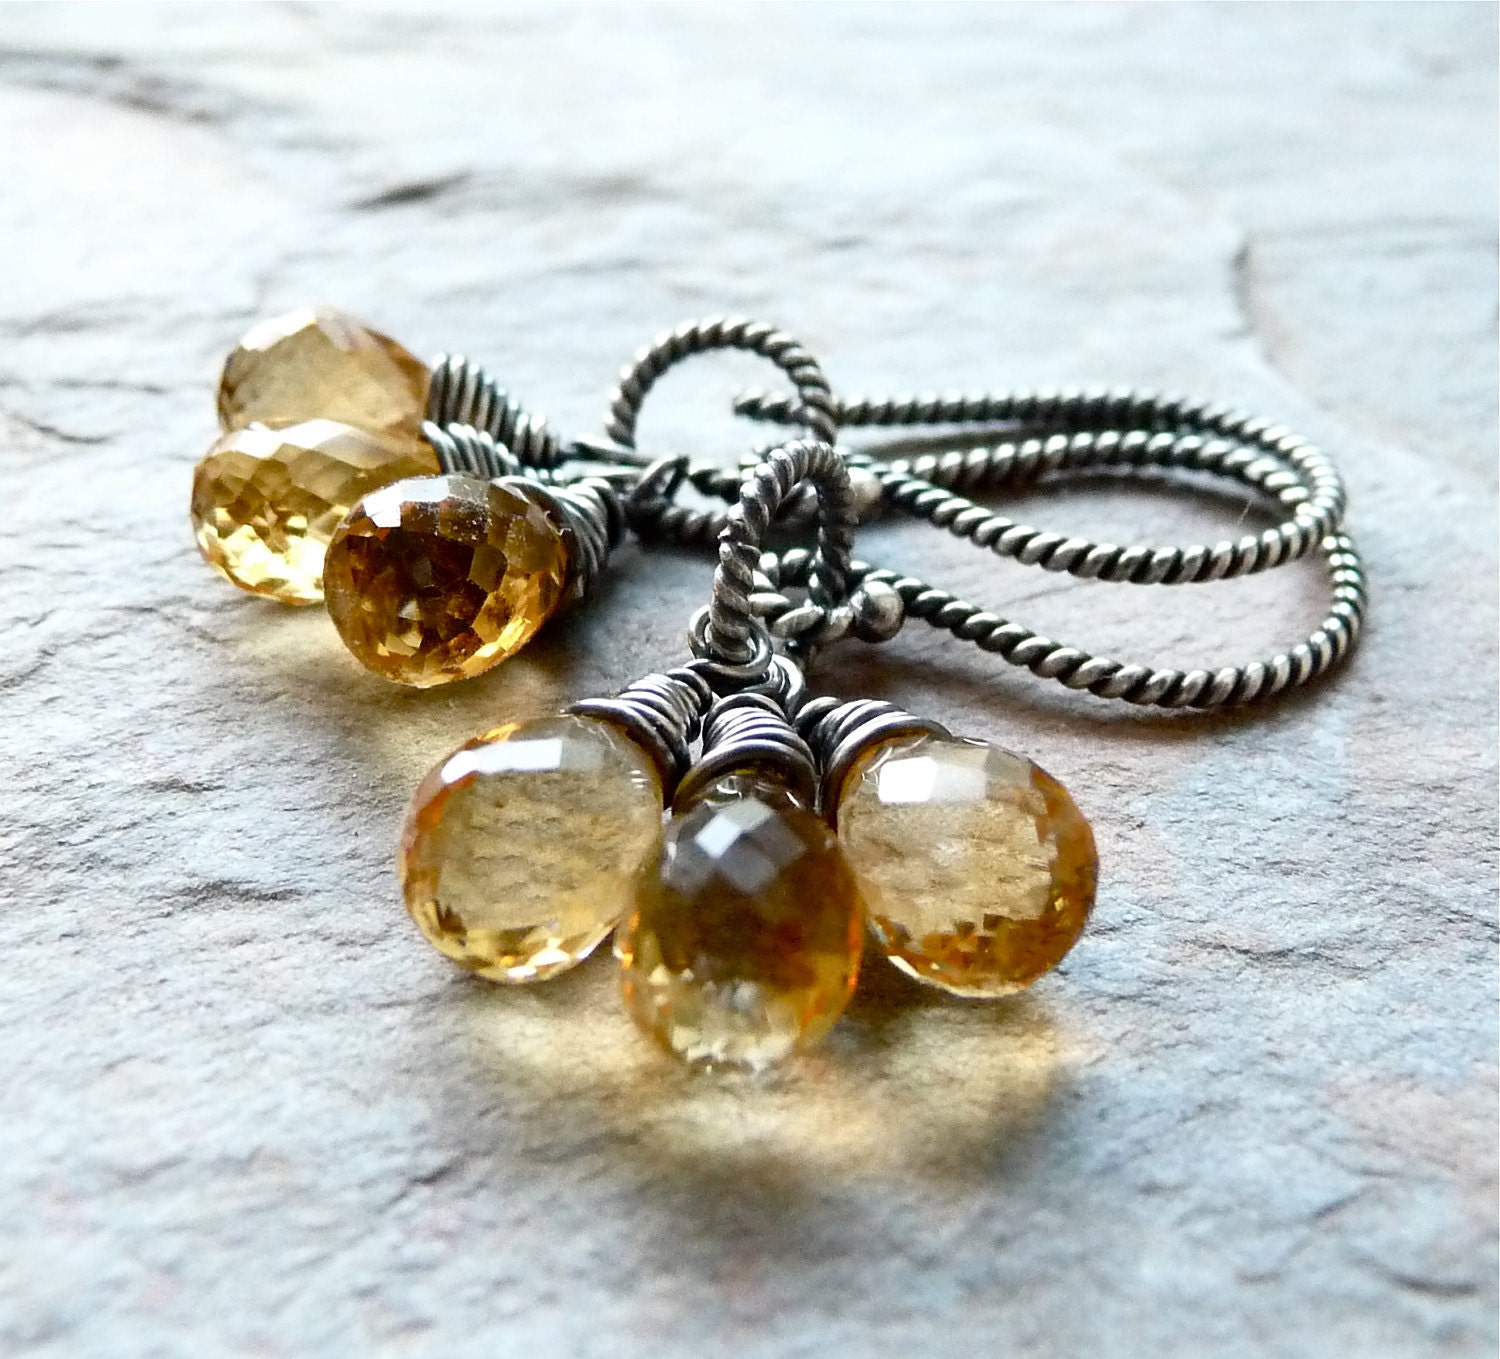 Triple Drop Earrings - Handmade Faceted Citrine Teardrops Wire Wrapped in Oxidized Sterling Silver